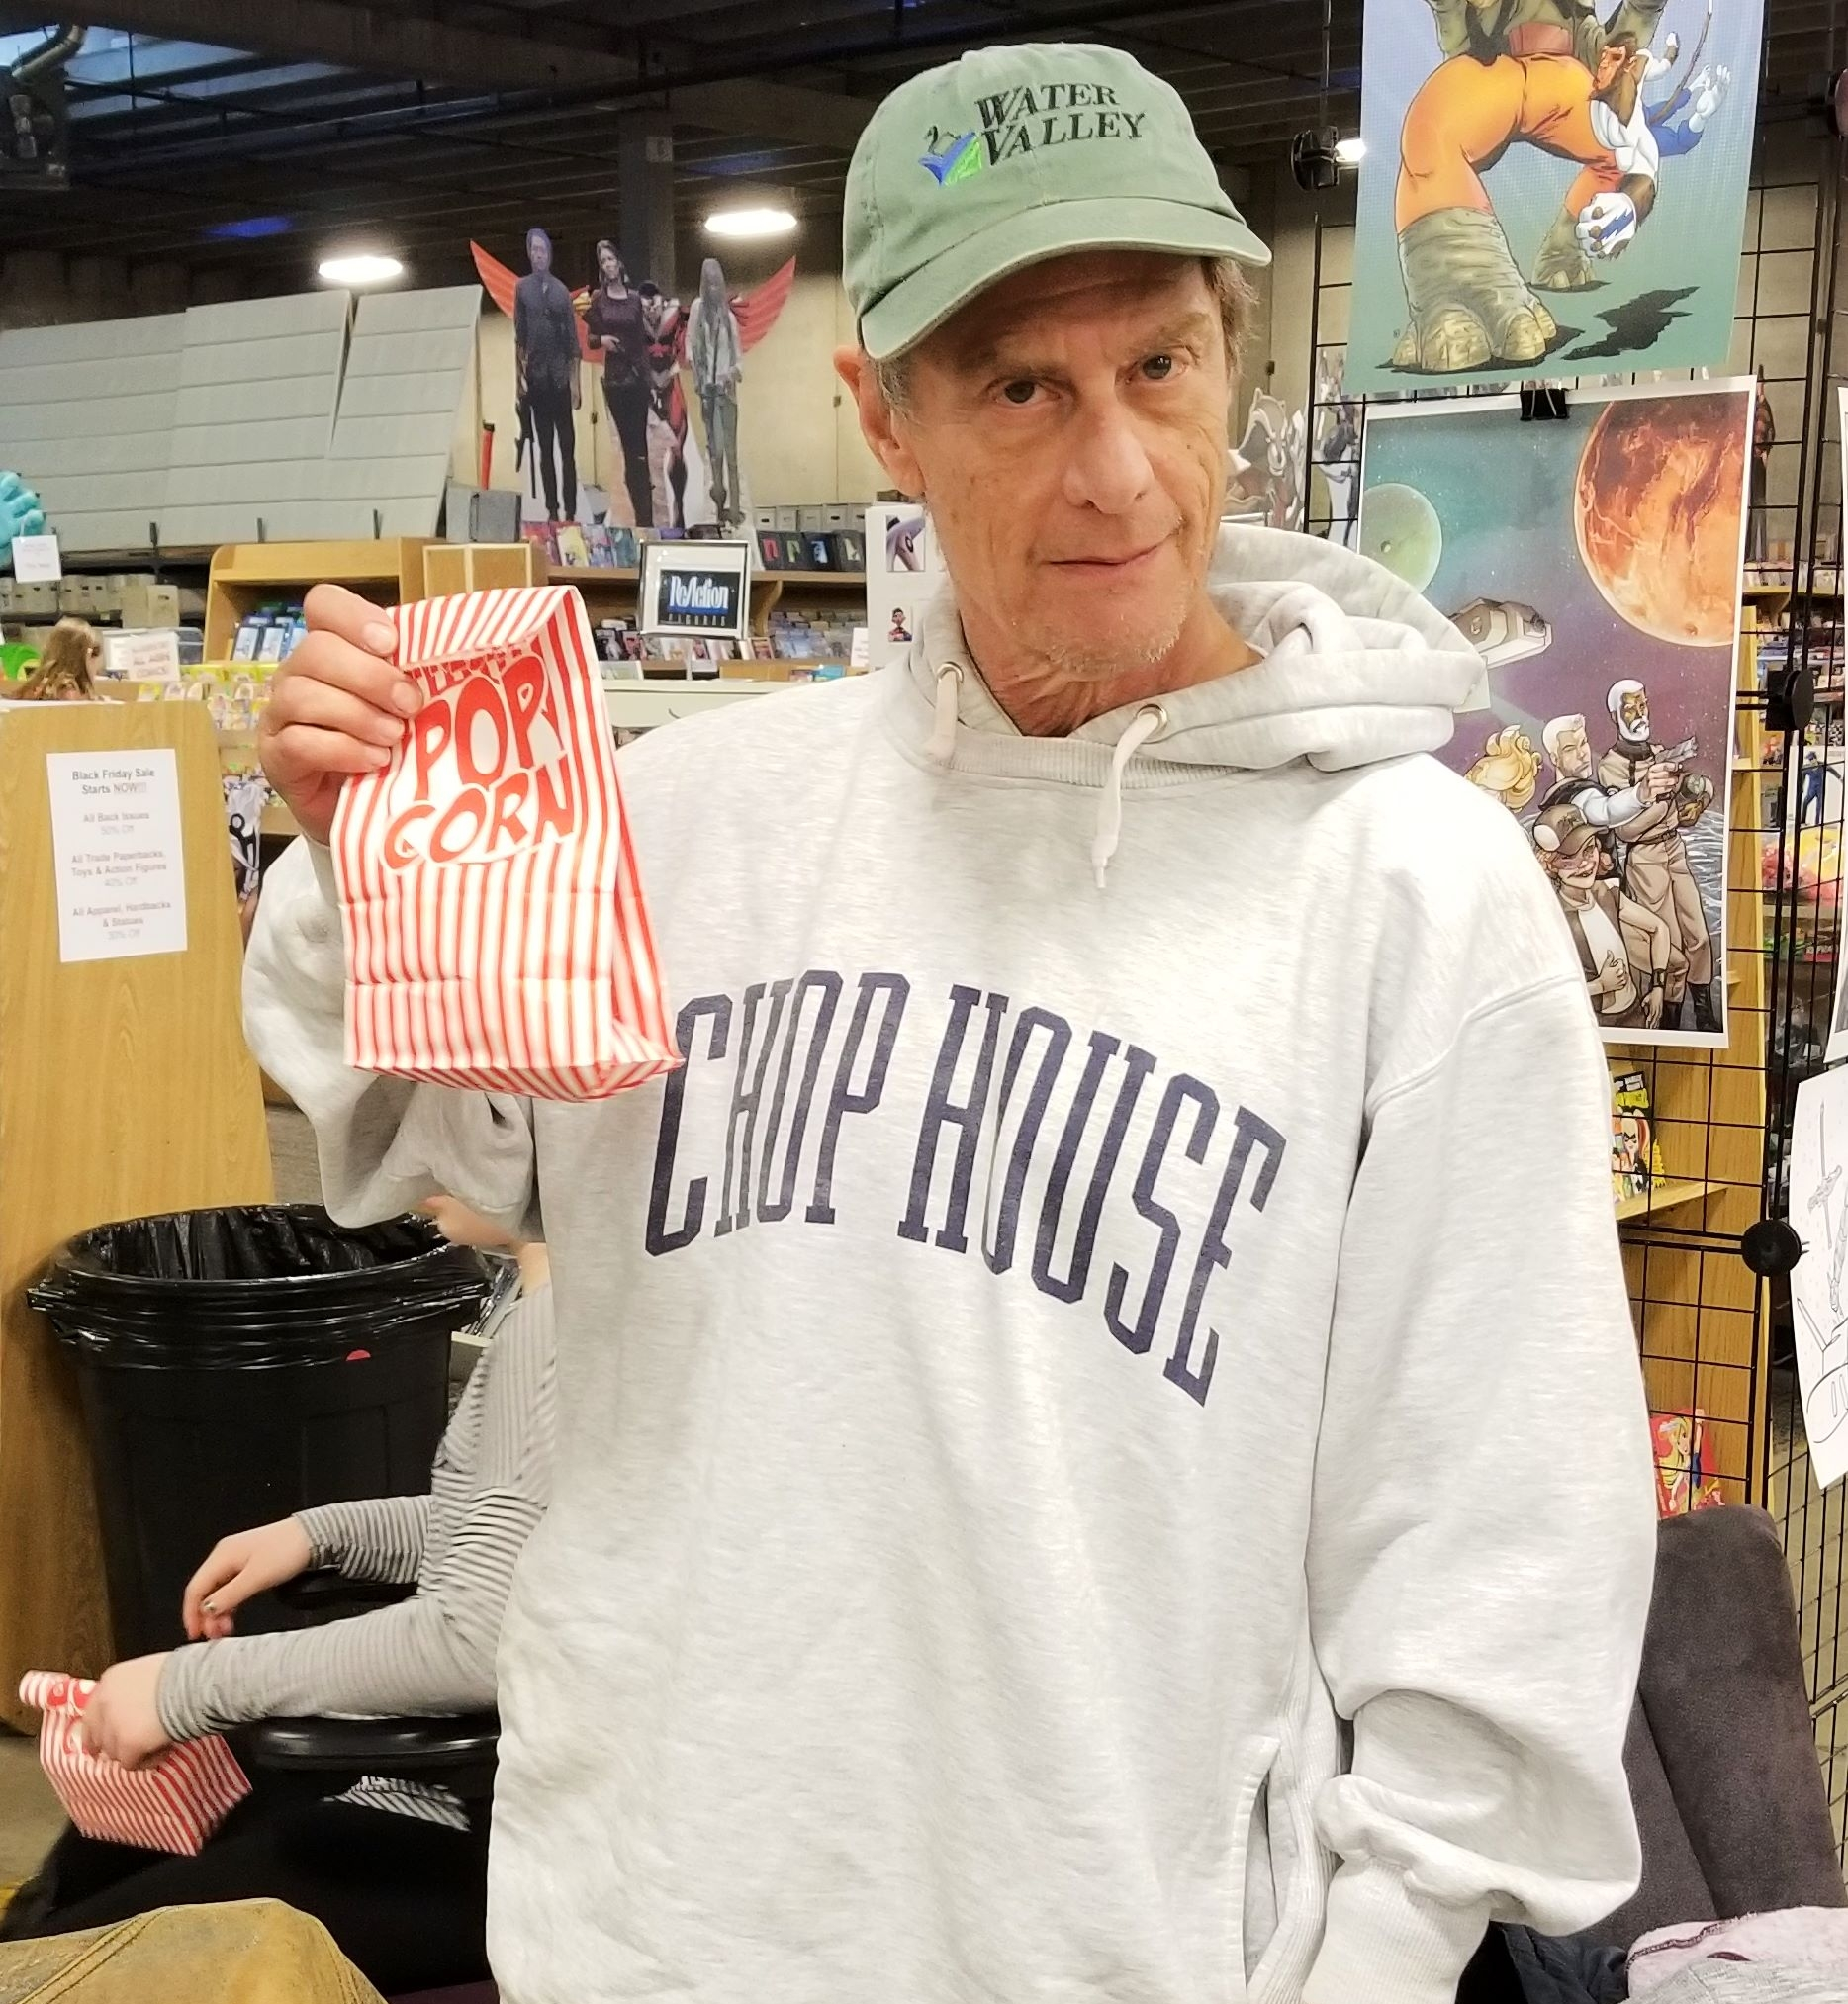 Mike Baron (and his popcorn) at the Centennials launch party.